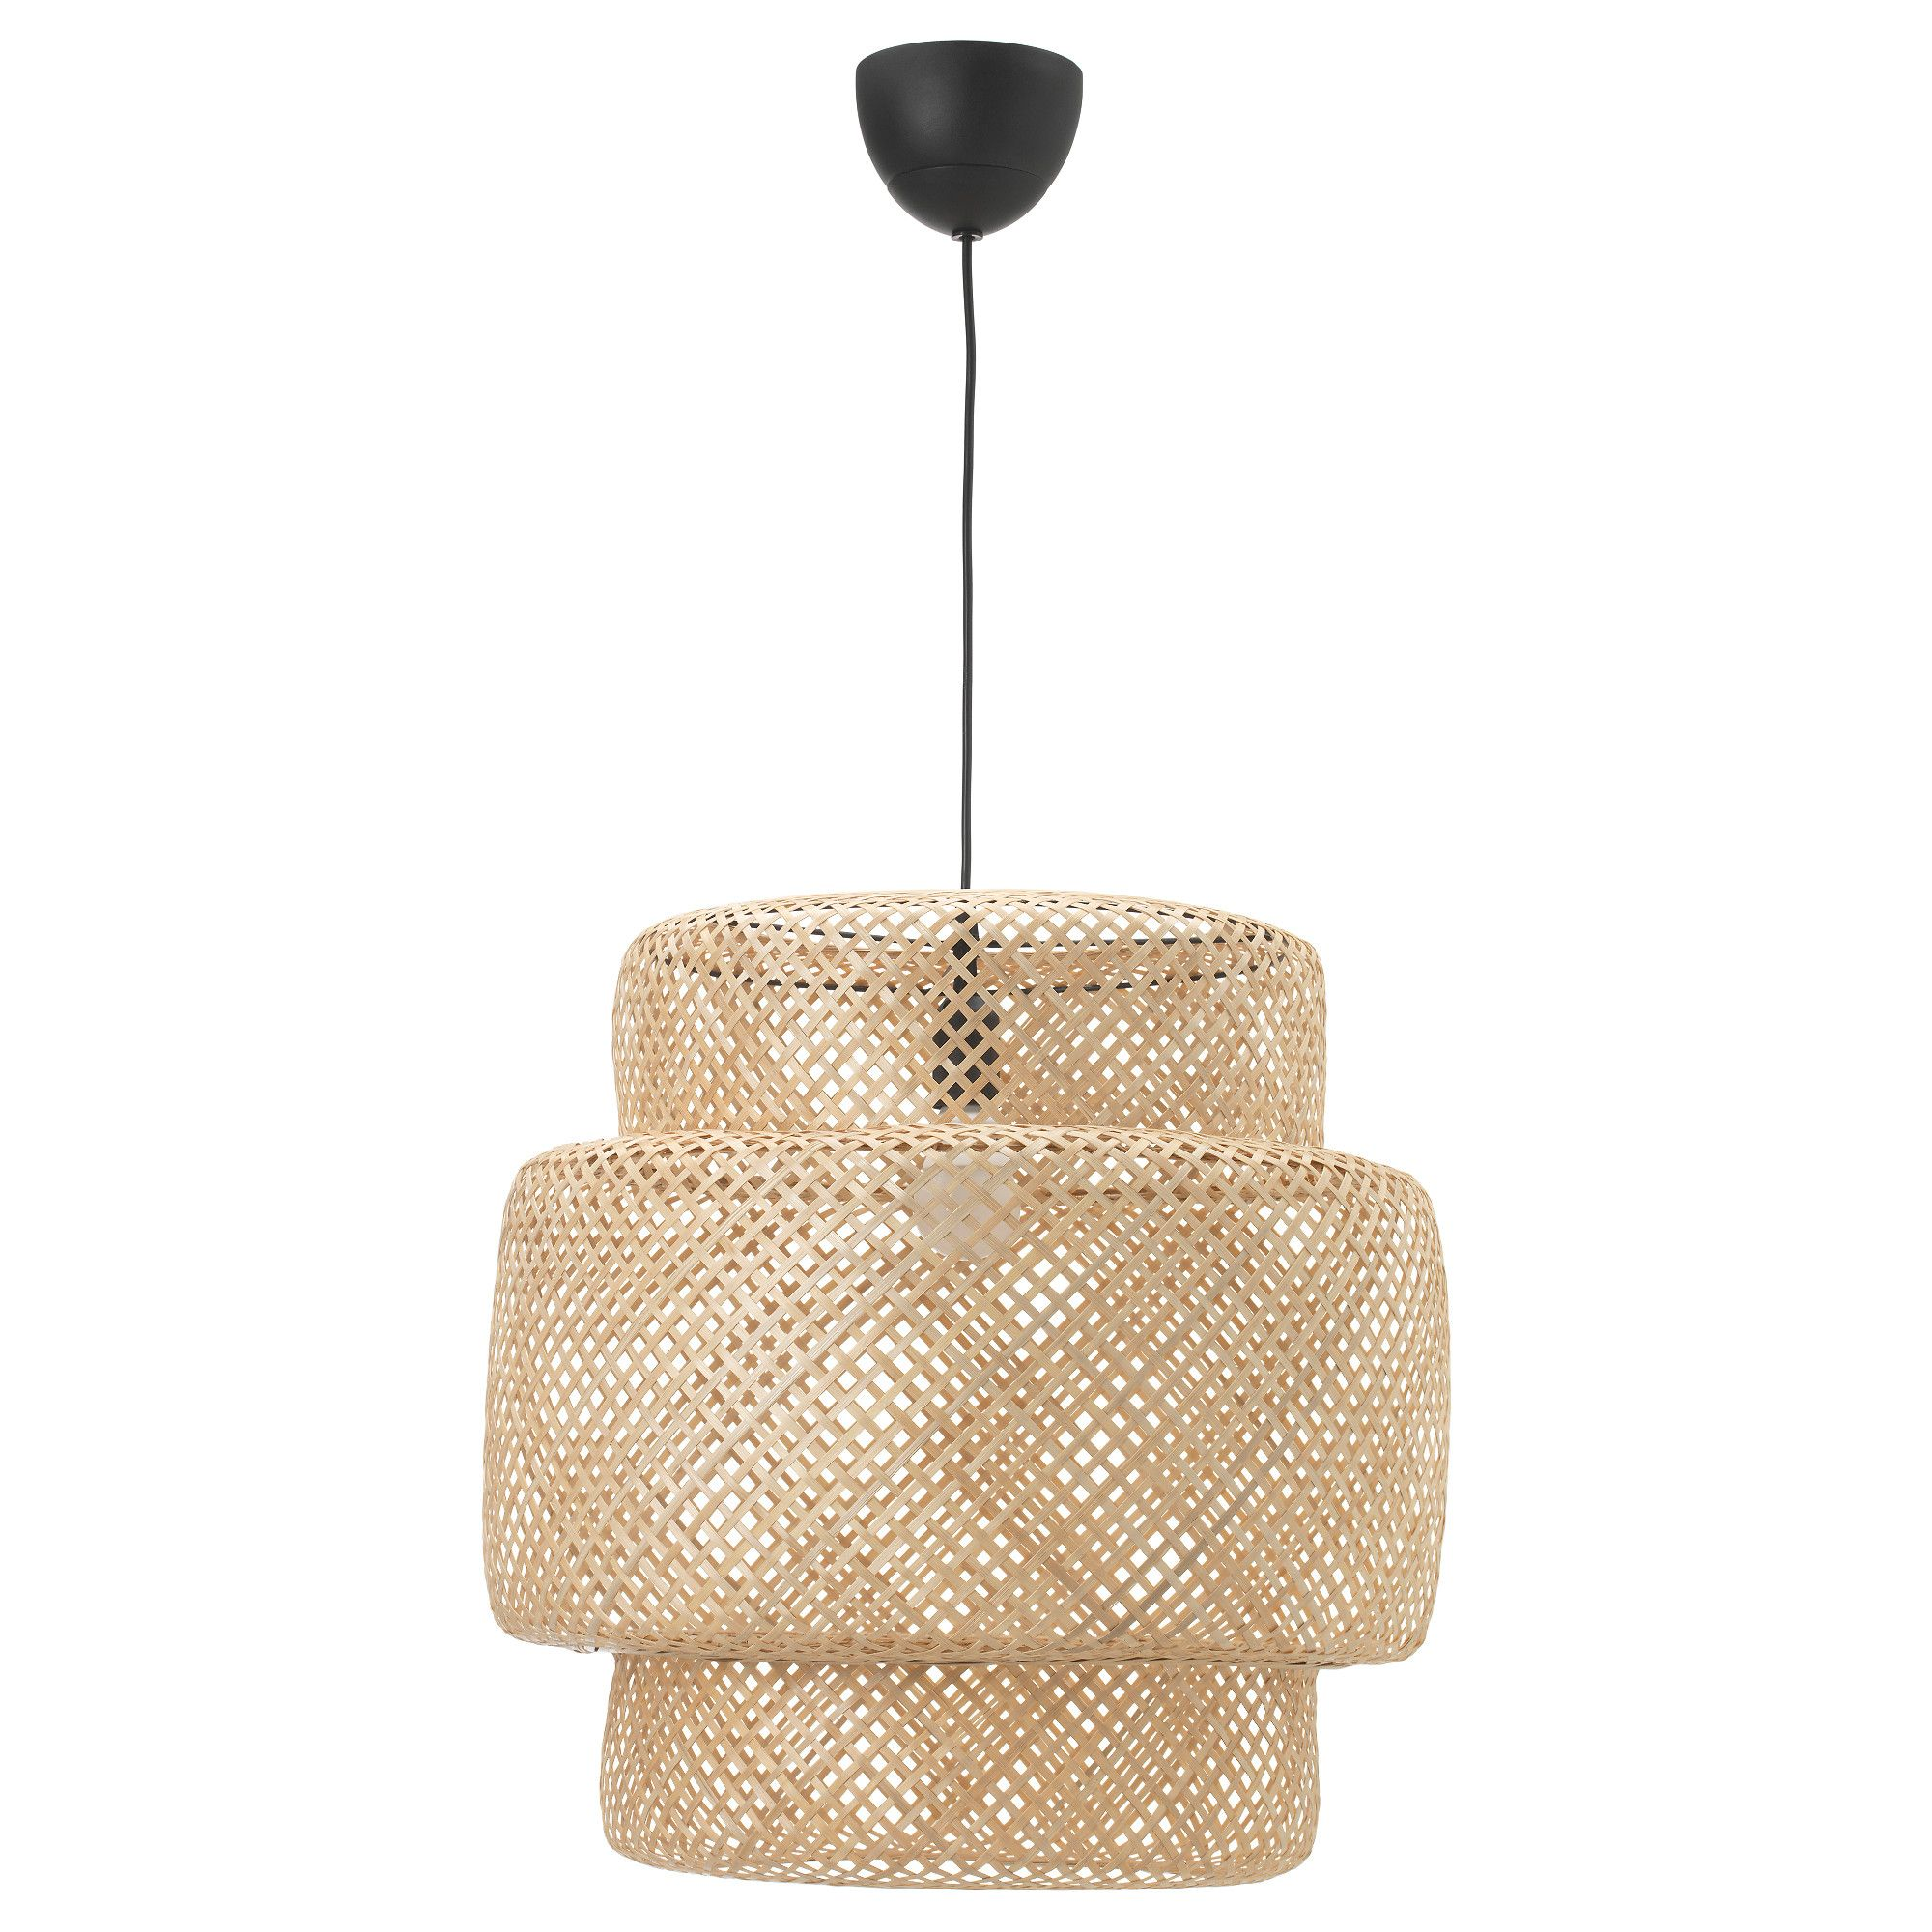 Sinnerlig Suspension Bambou Luminaire Ikea Suspension Bambou